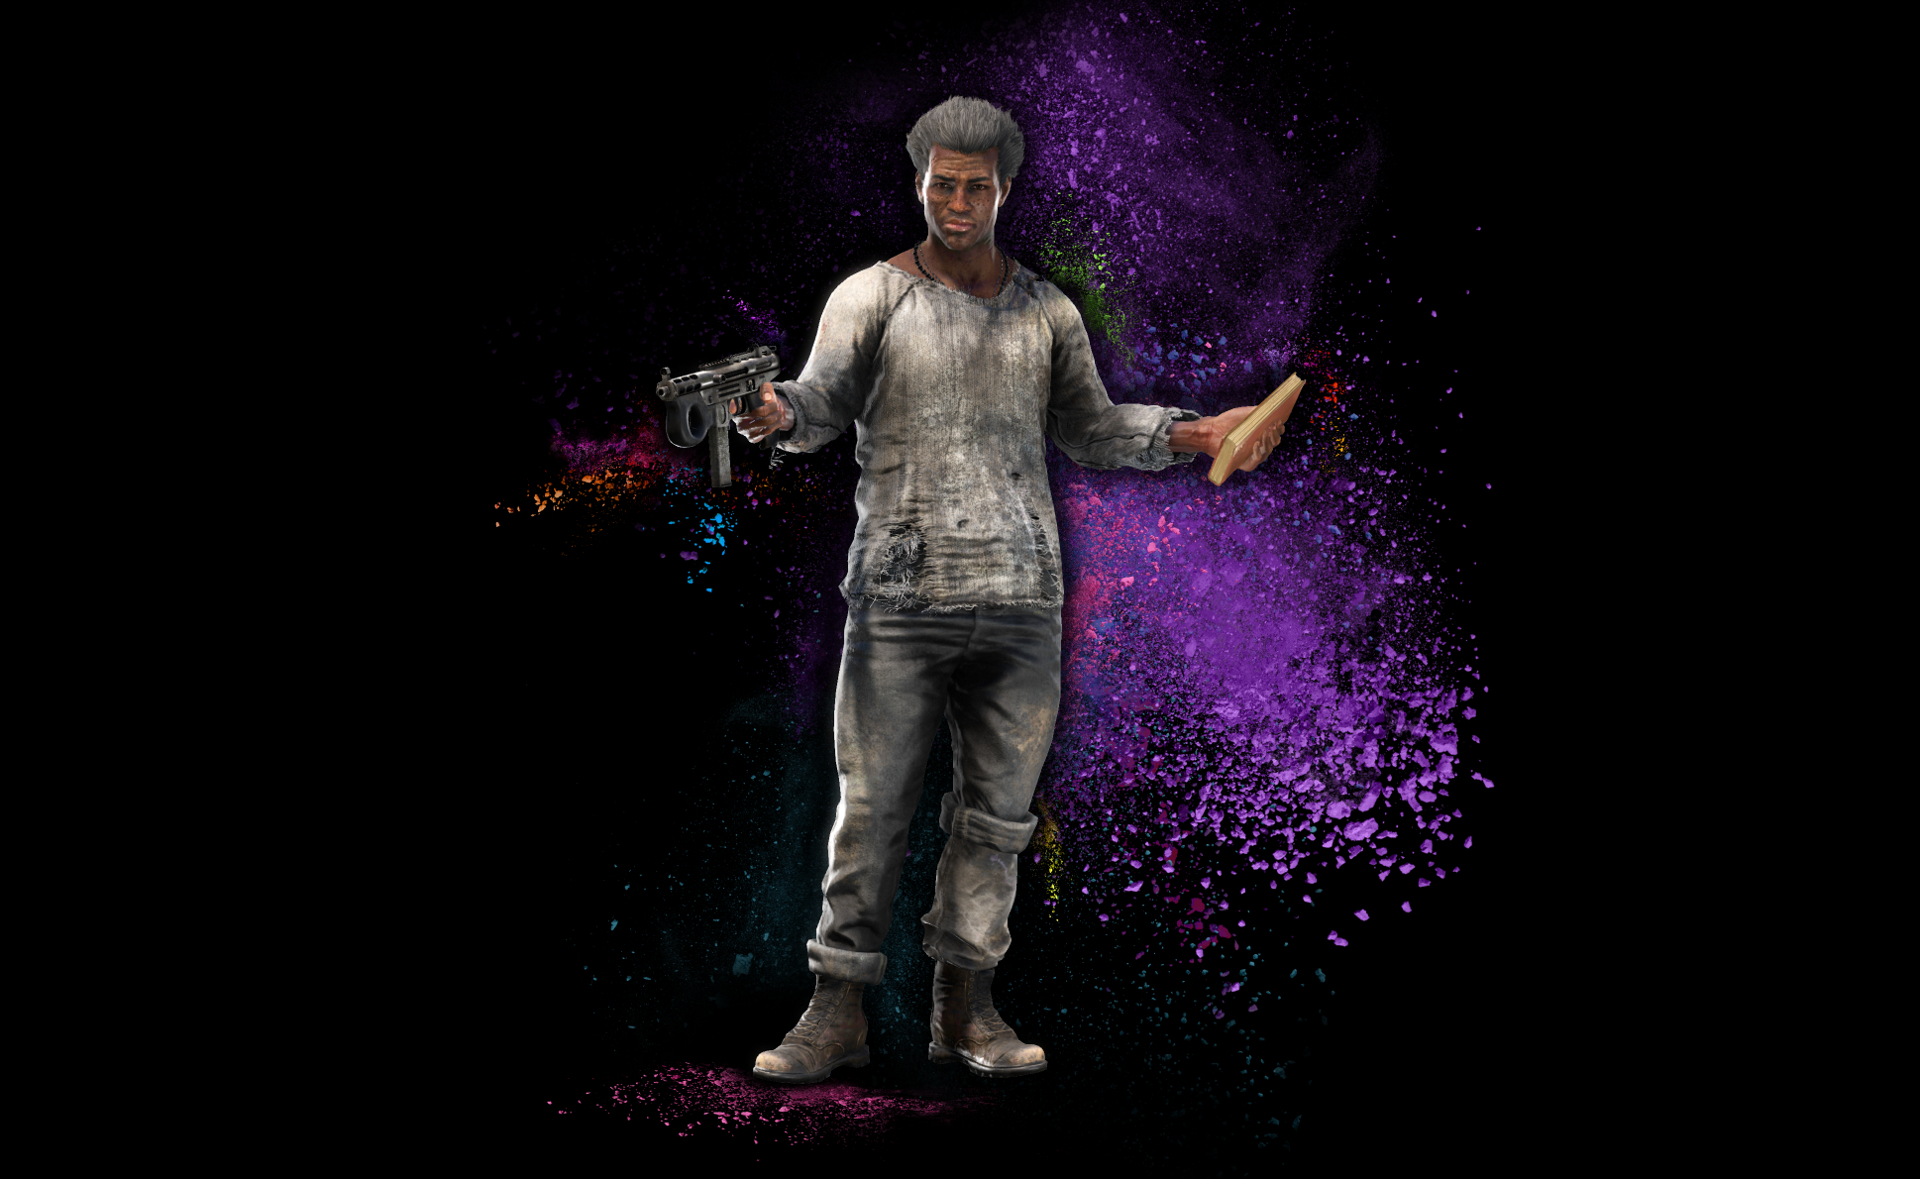 Far Cry 4 S Weapons Of Kyrat Trailer Meet Weapon Dealer Longinus Who Says All Lions Need Teeth Neoseeker